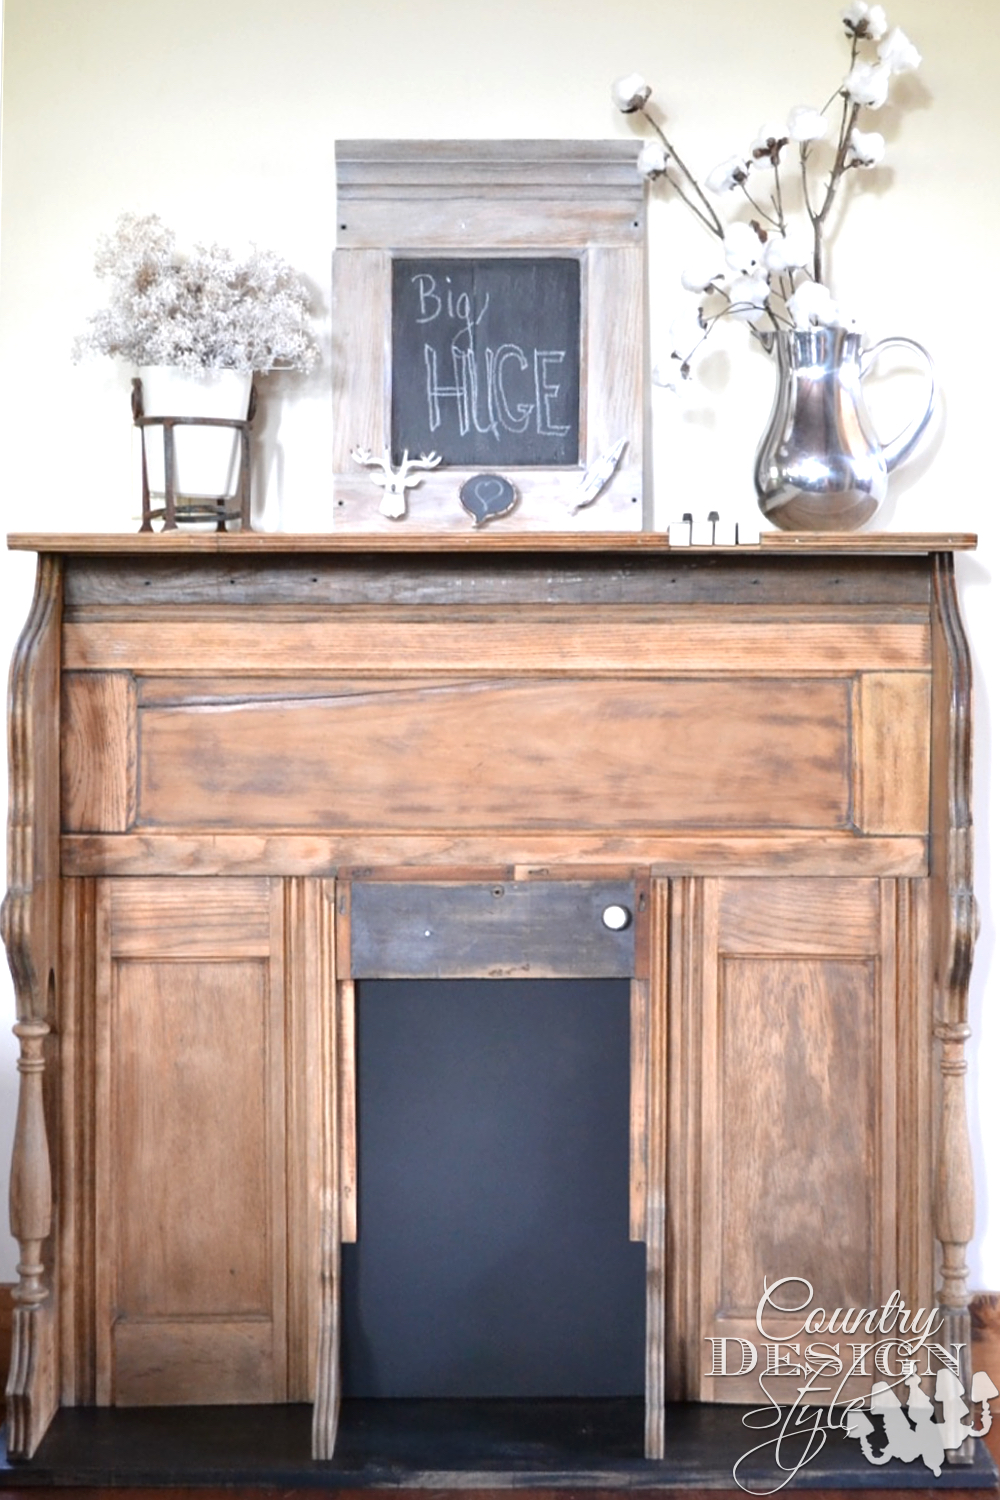 Organ remade into faux mantel with tutorial for inserting piano keys into top, chalkboard in firebox. Displayed with DIY cotton stems.   countrydesignstyle.com